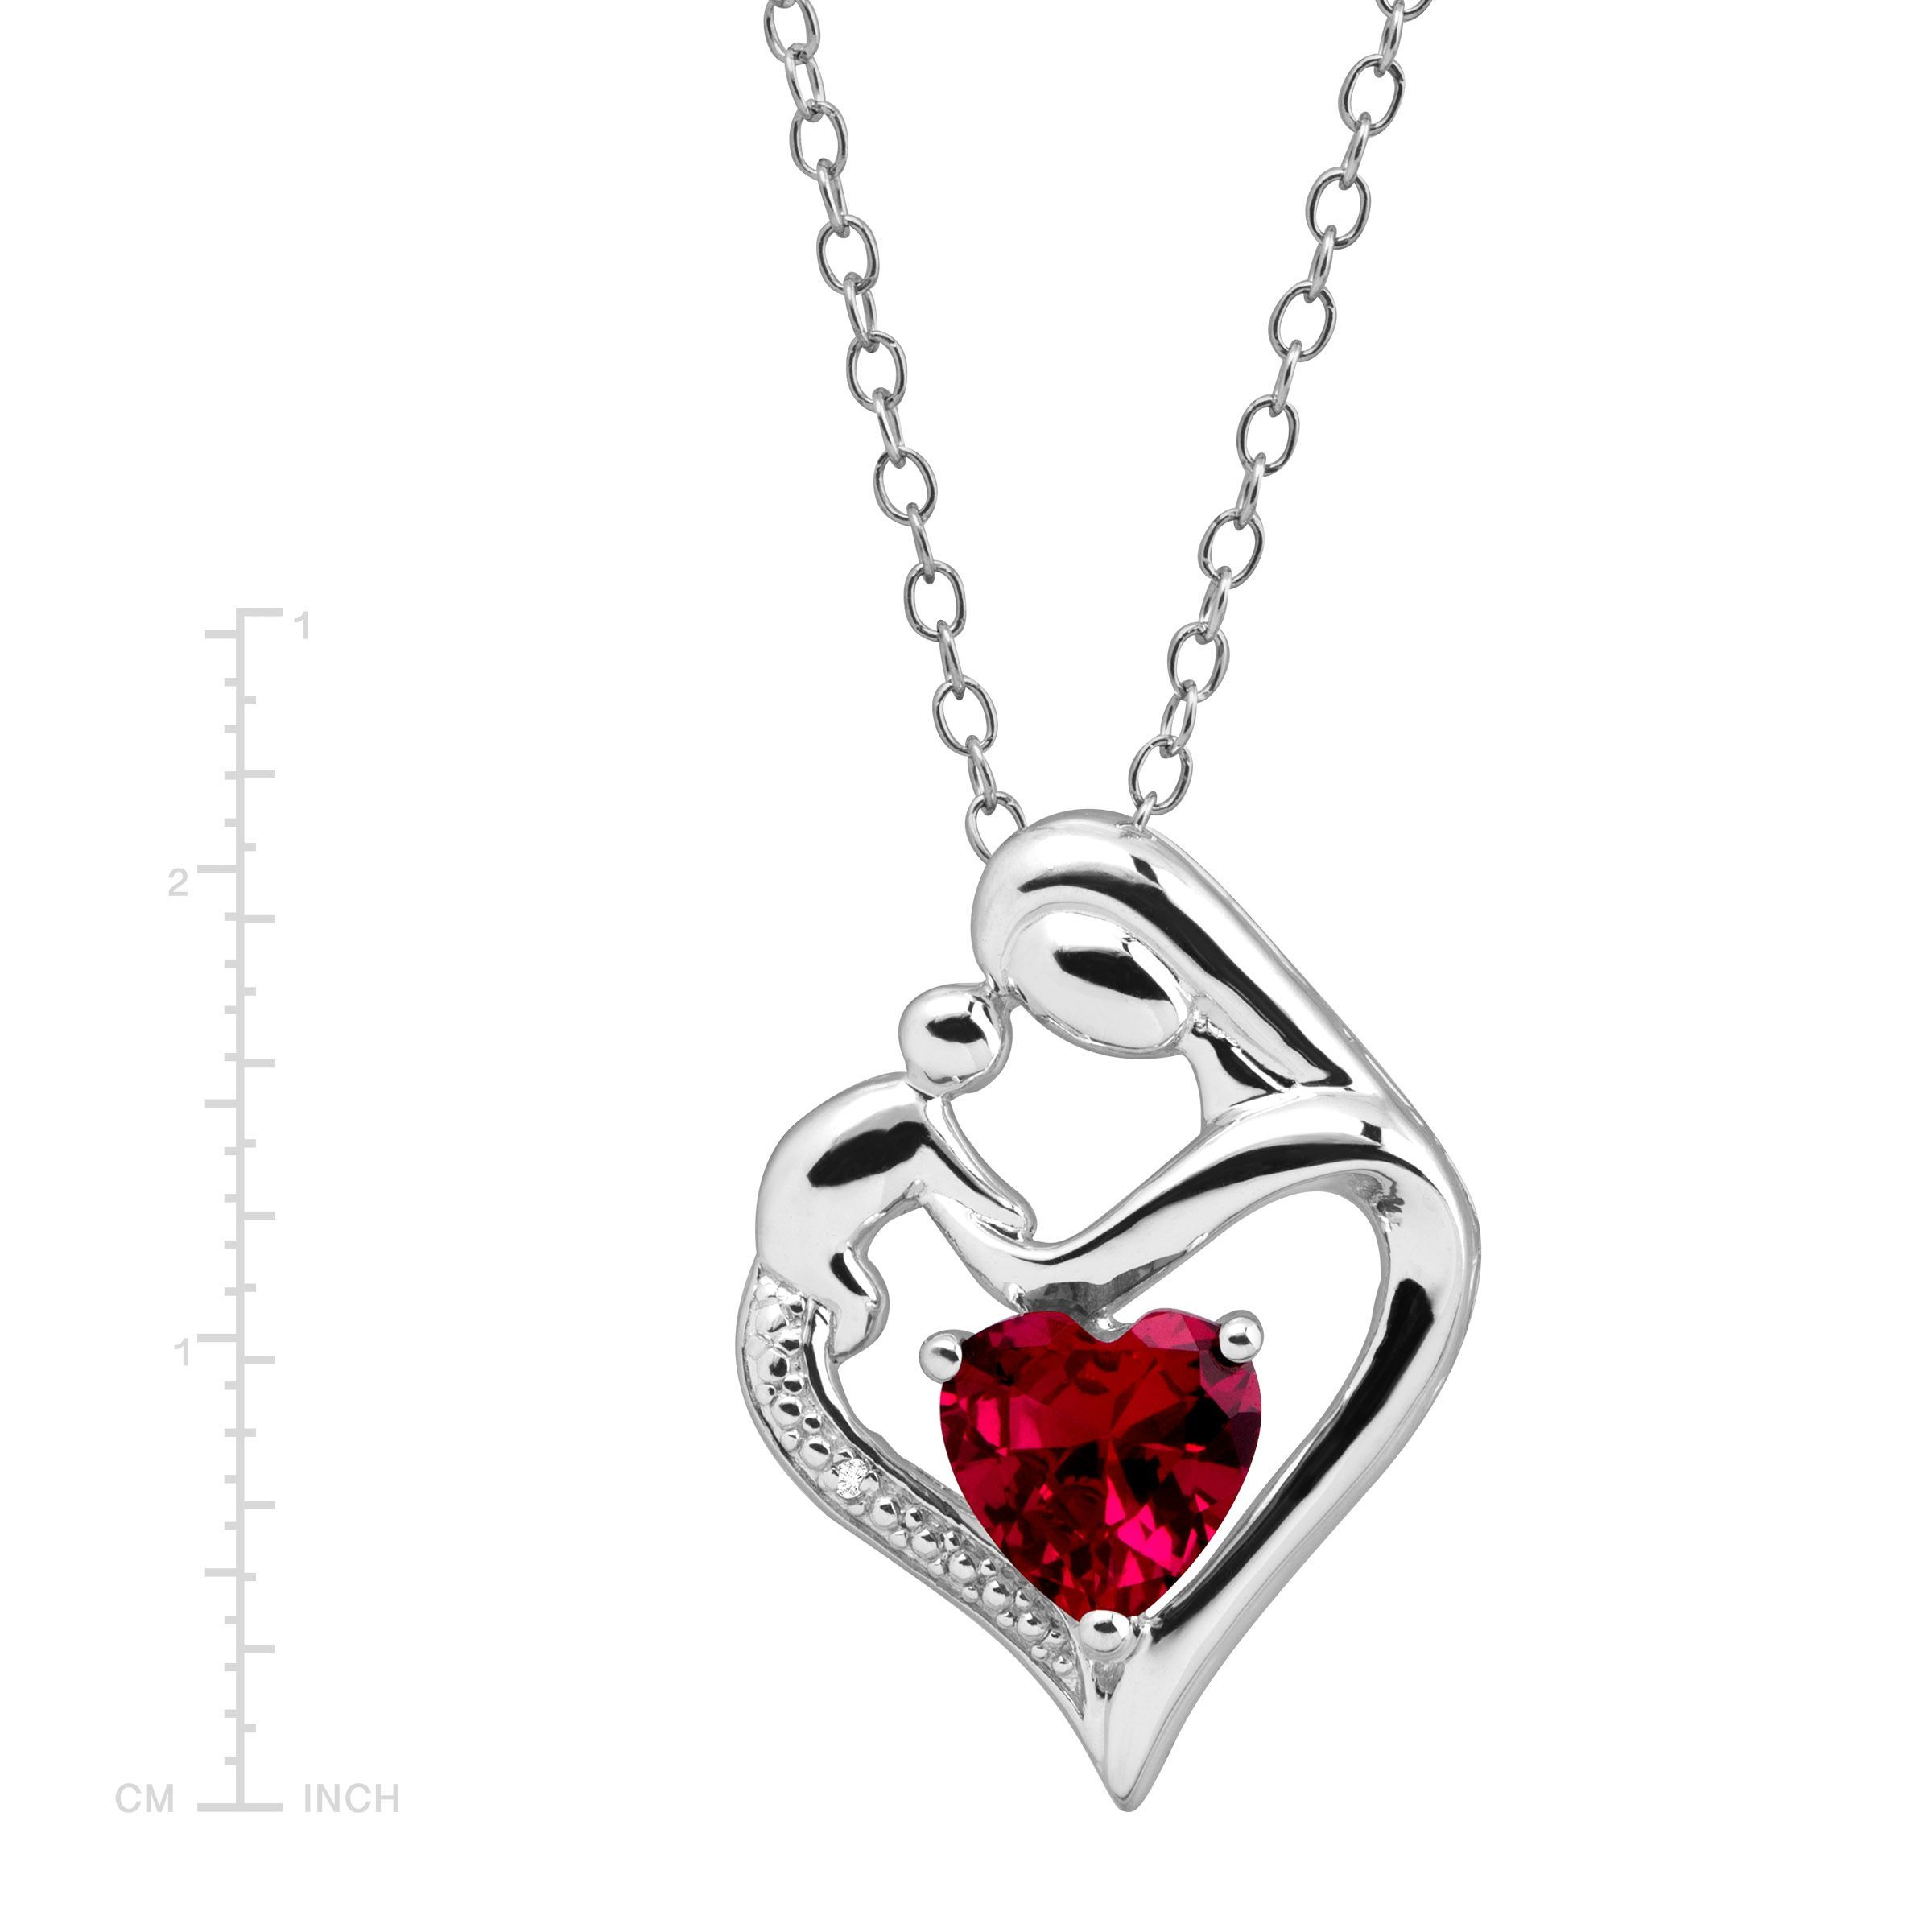 heart child necklace diamond inch sterling on products and pendant mother an silver chain